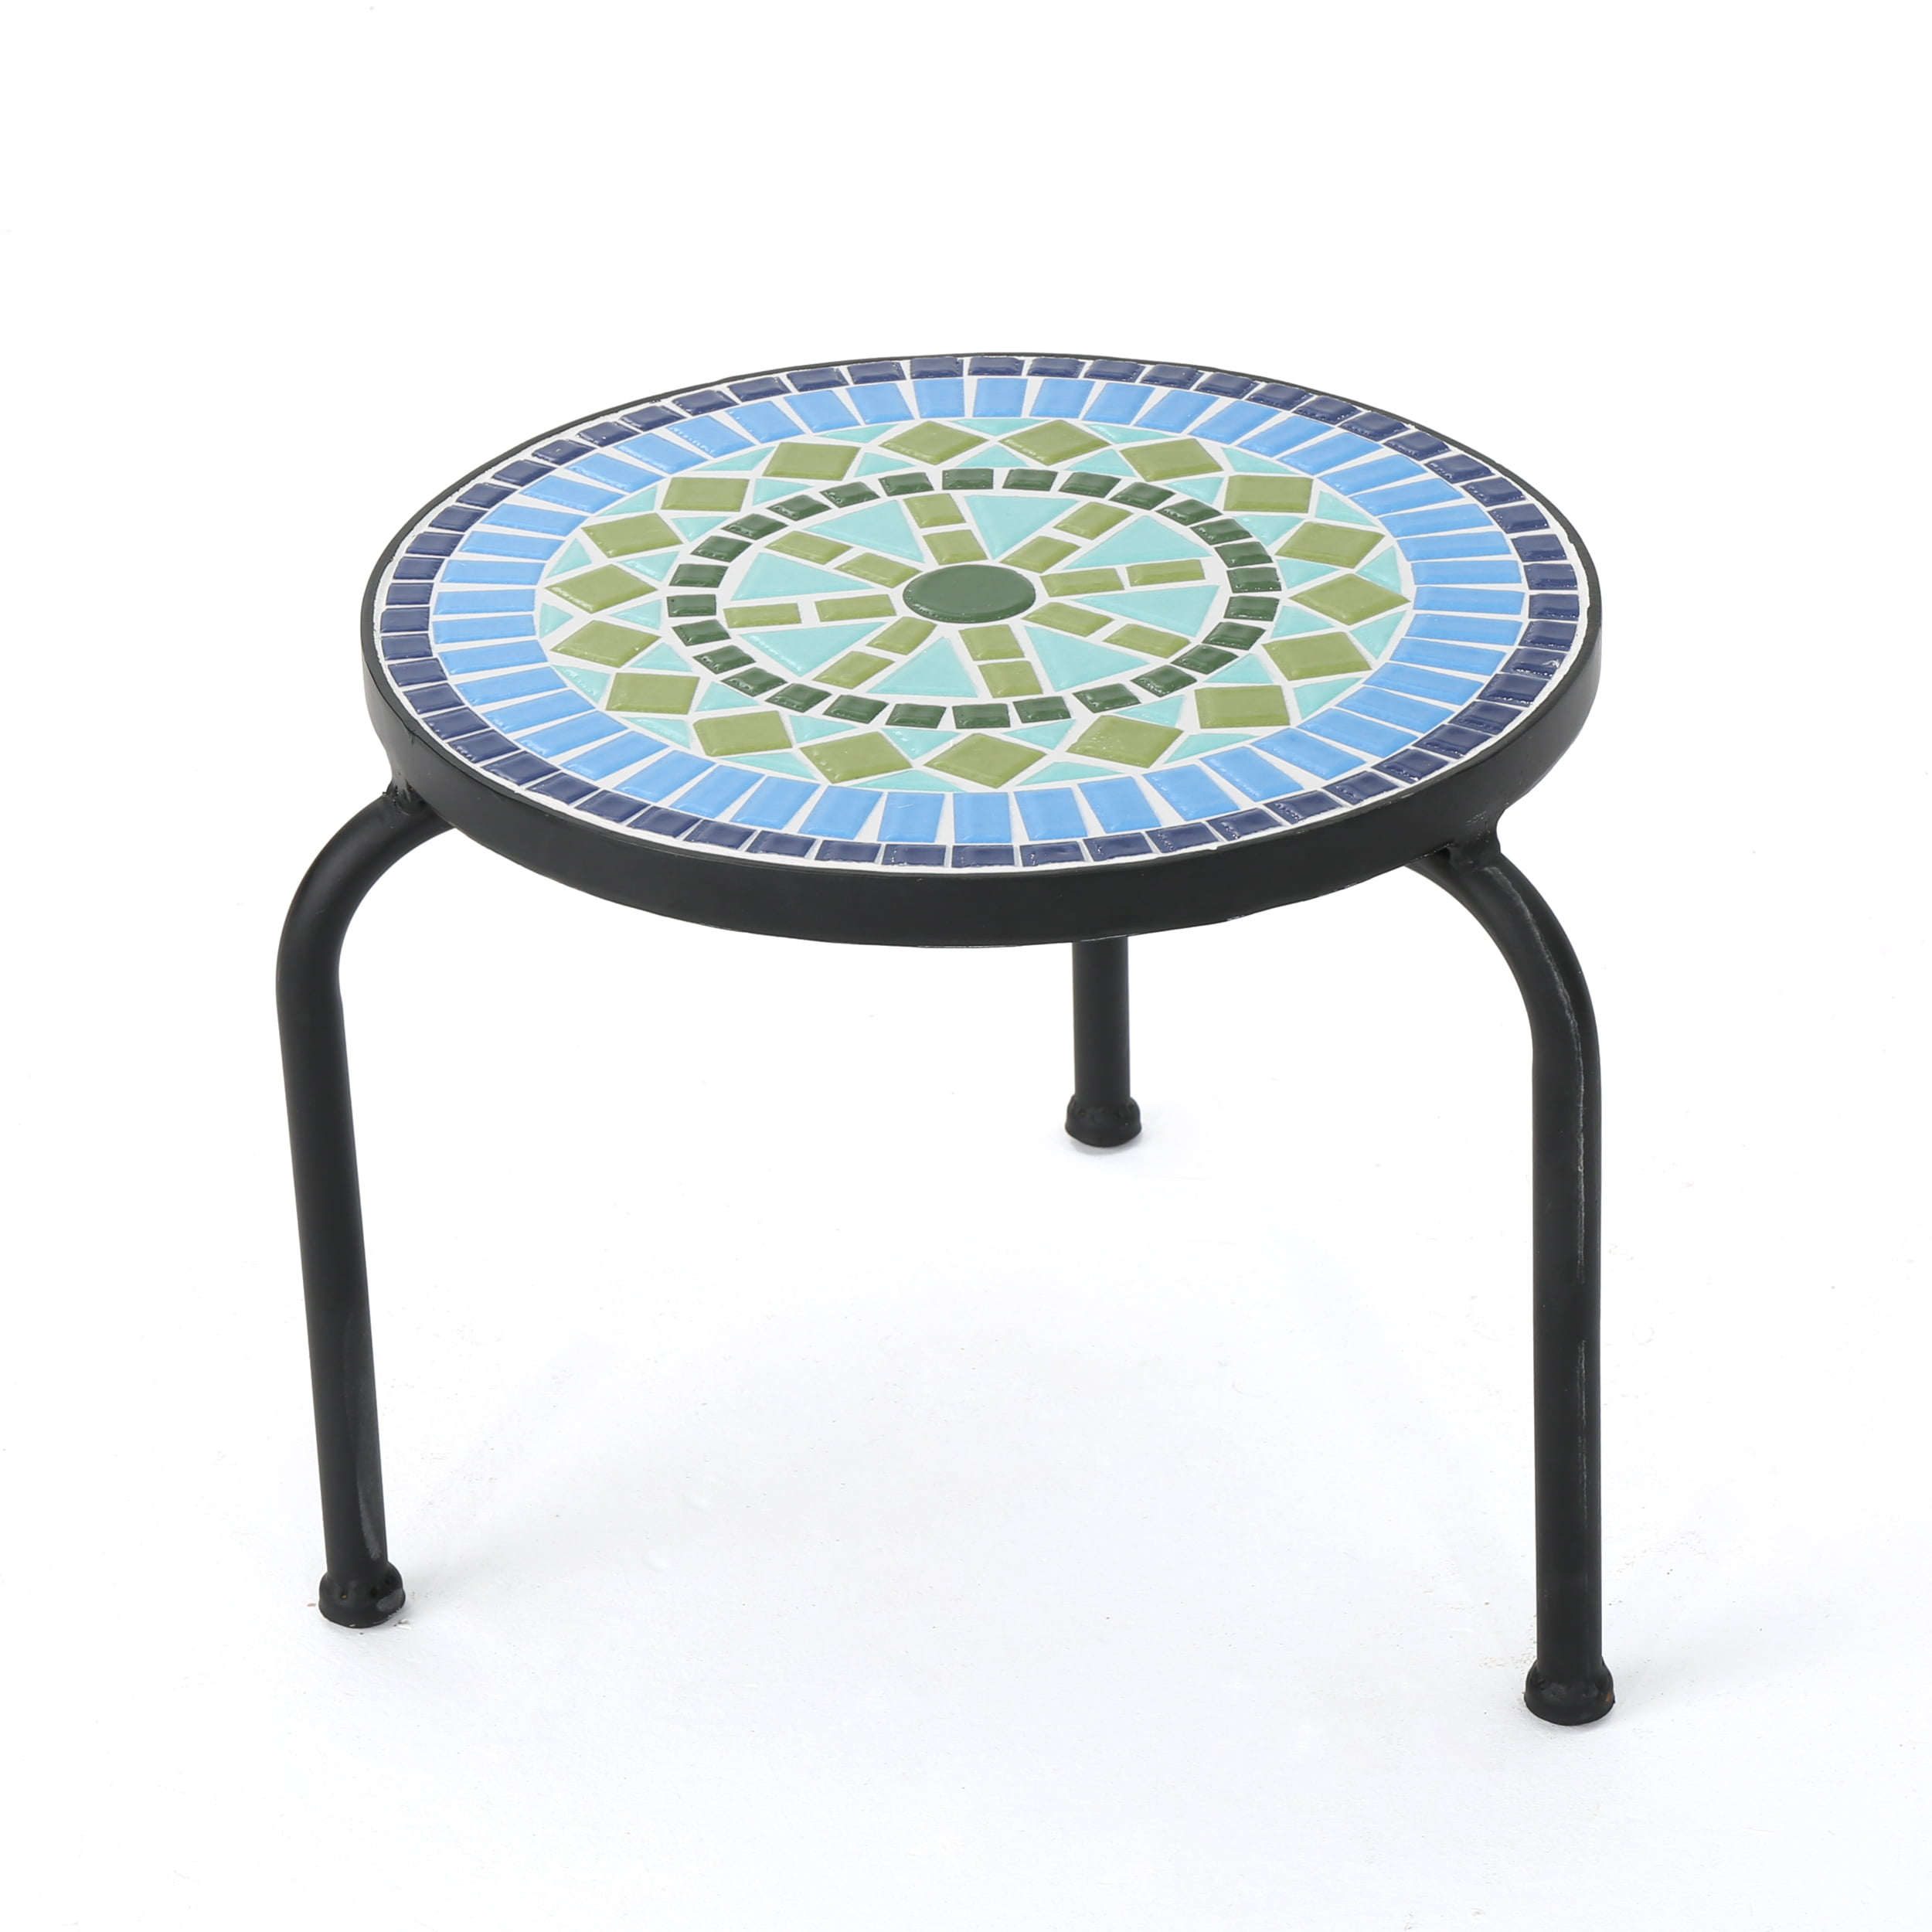 Isildur Outdoor Ceramic Tile Side Table With Iron Frame